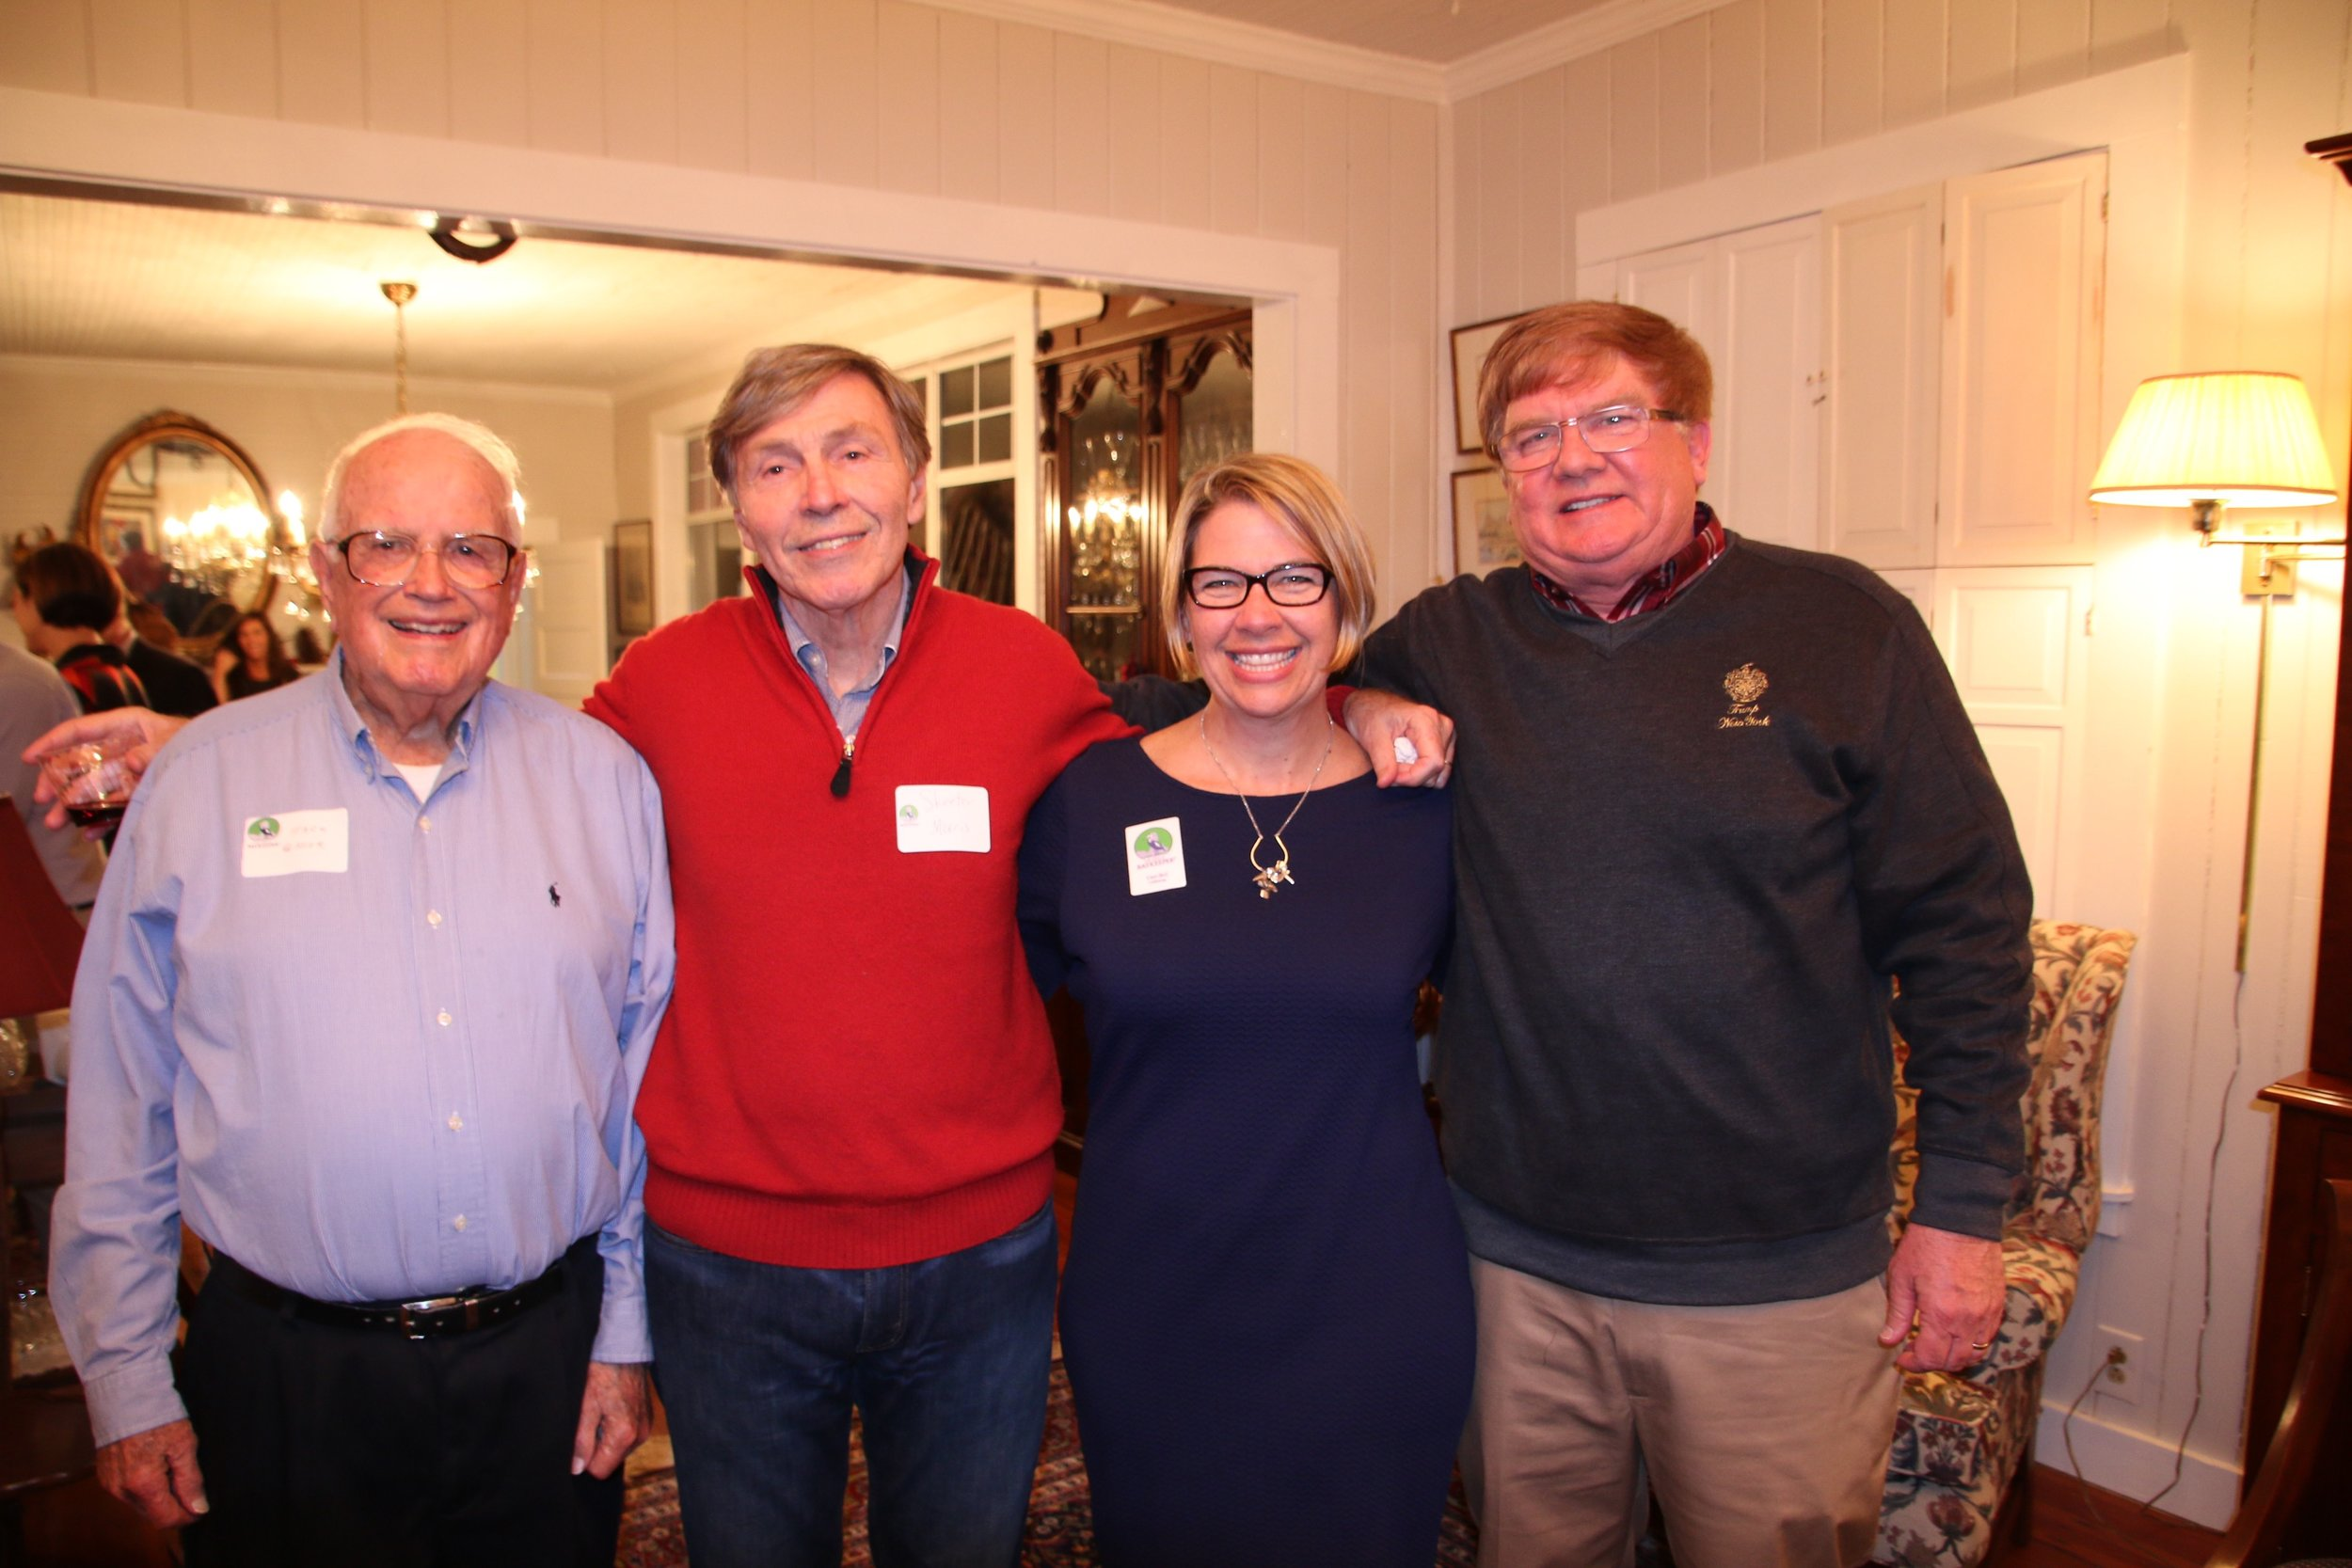 """Casi Callaway with founding members and former presidents of the organization.  From left to right: Jack Greer, Edward """"Skeeter"""" Morris, Casi Callaway, and Logan Gewin."""